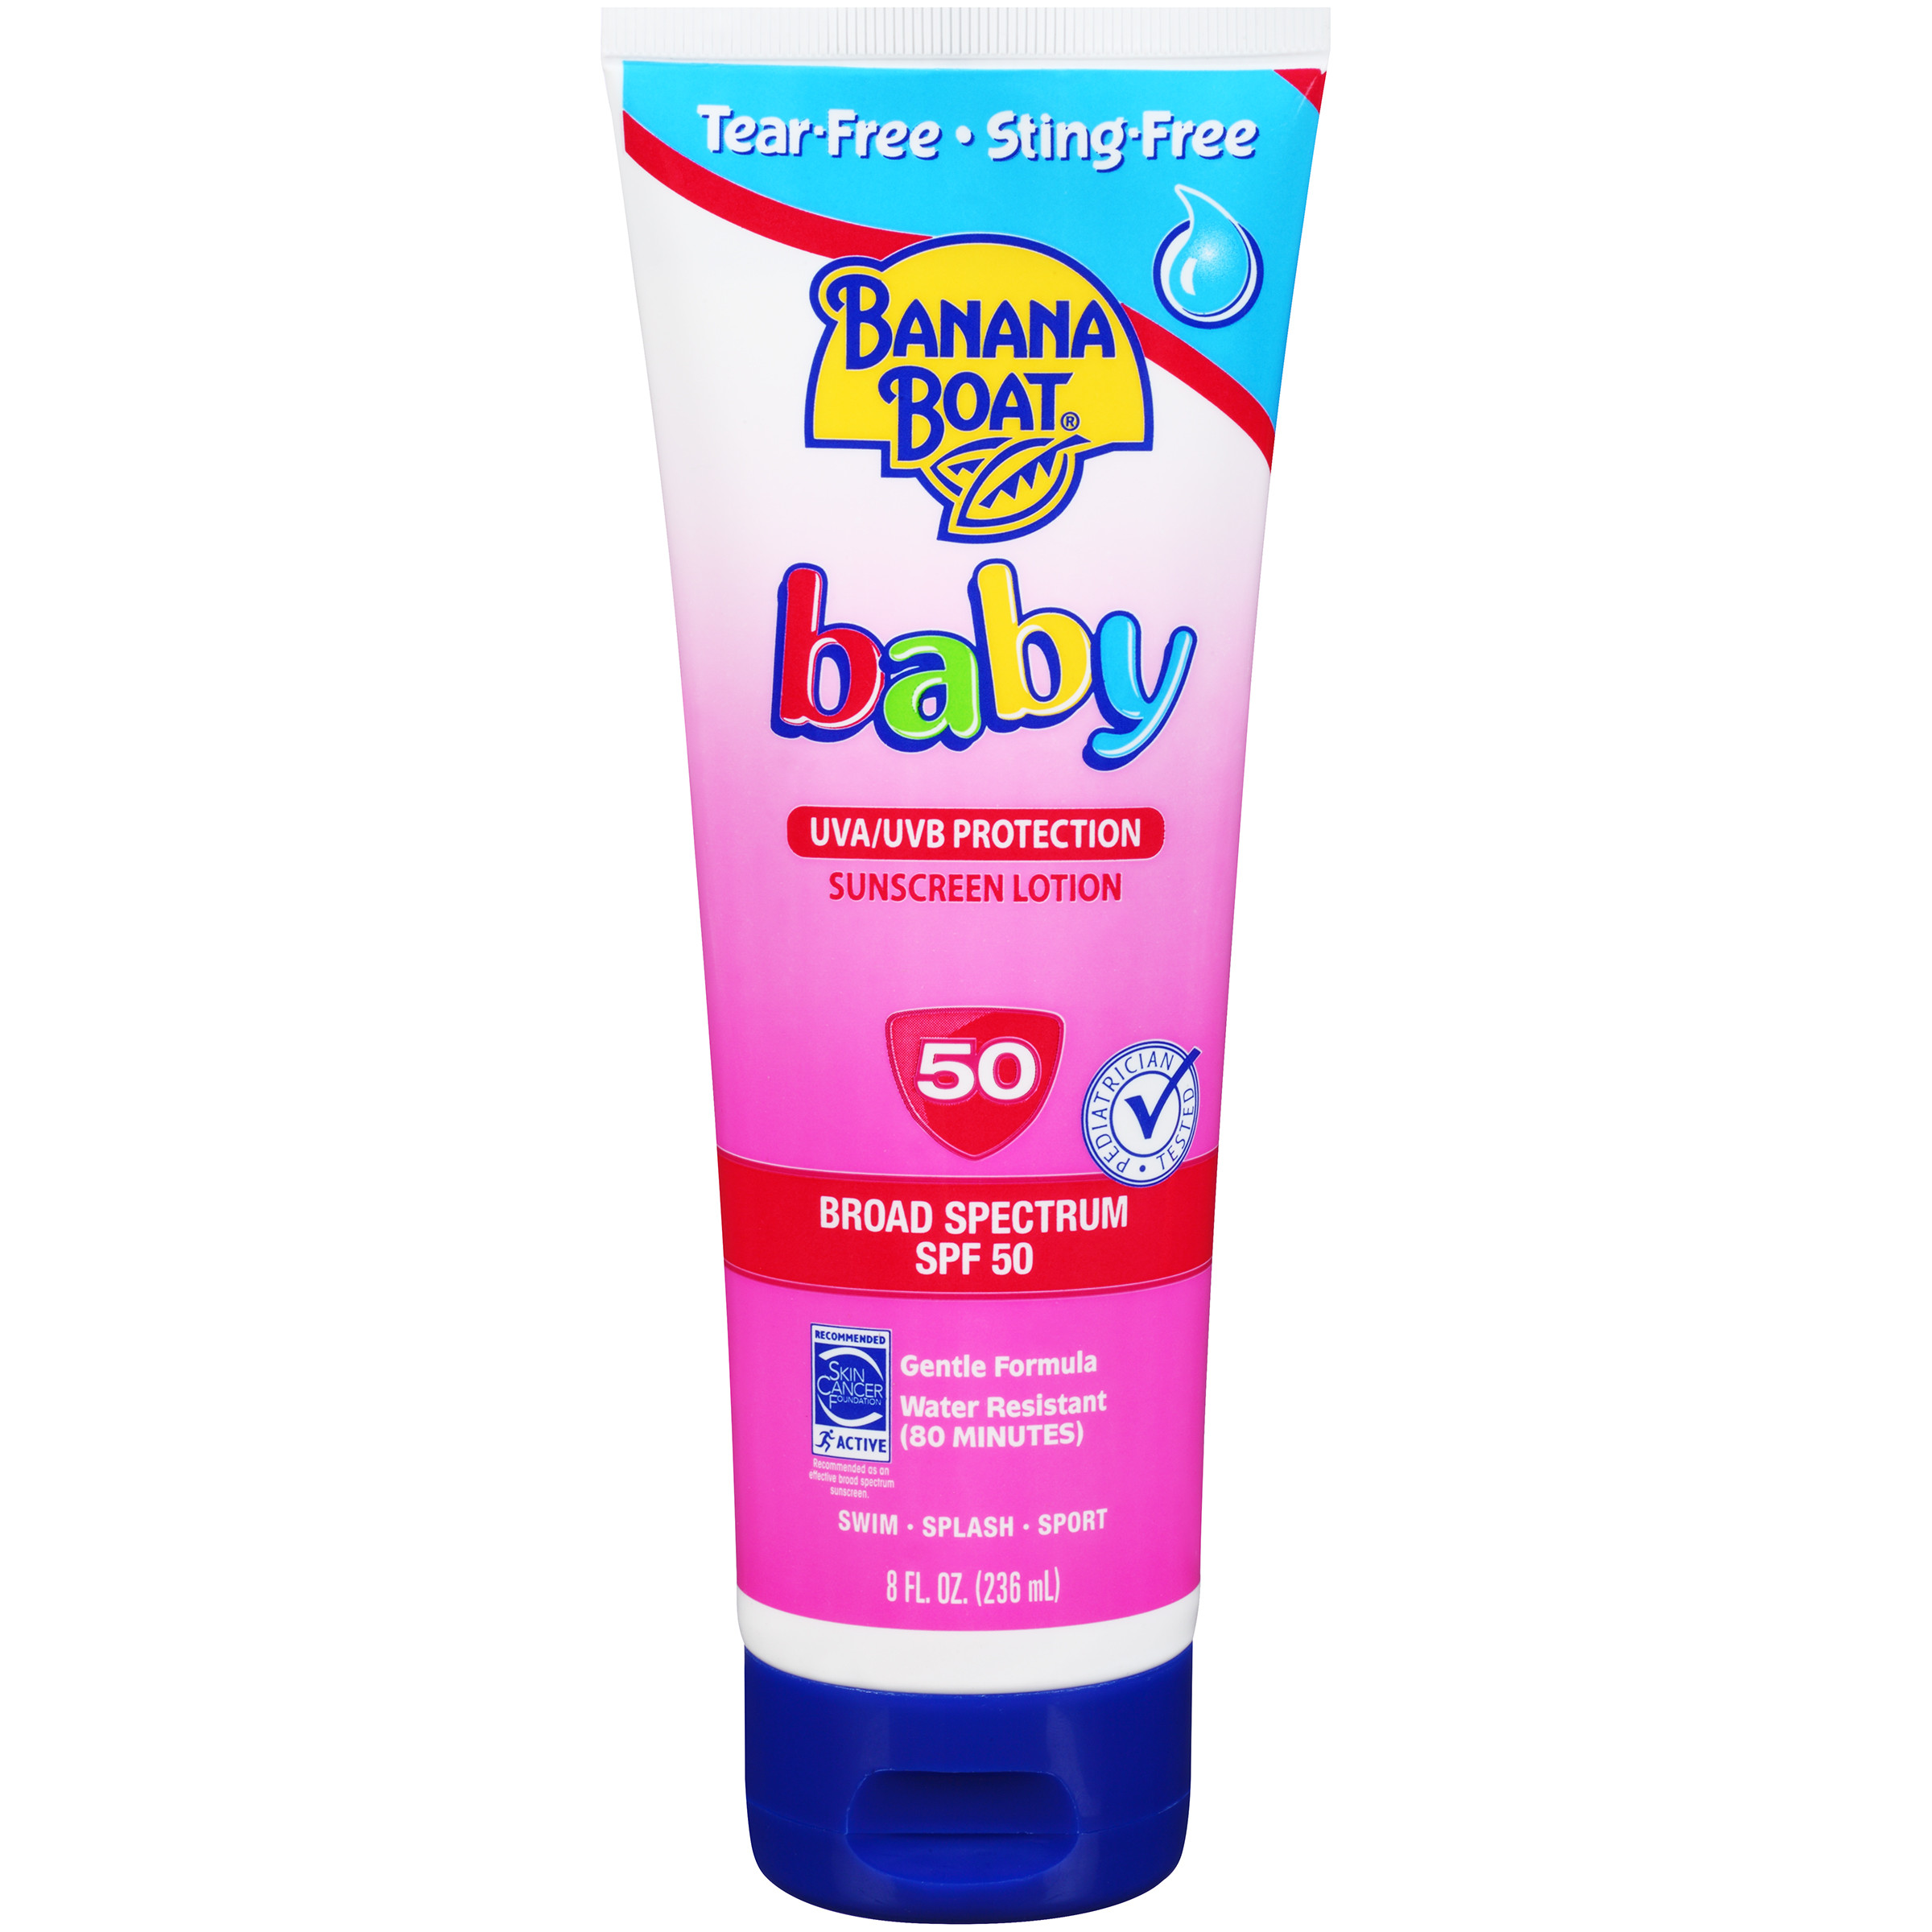 Banana Boat Baby Tear-Free Sting-Free Lotion Sunscreen Broad Spectrum SPF 50 - 8 Ounces